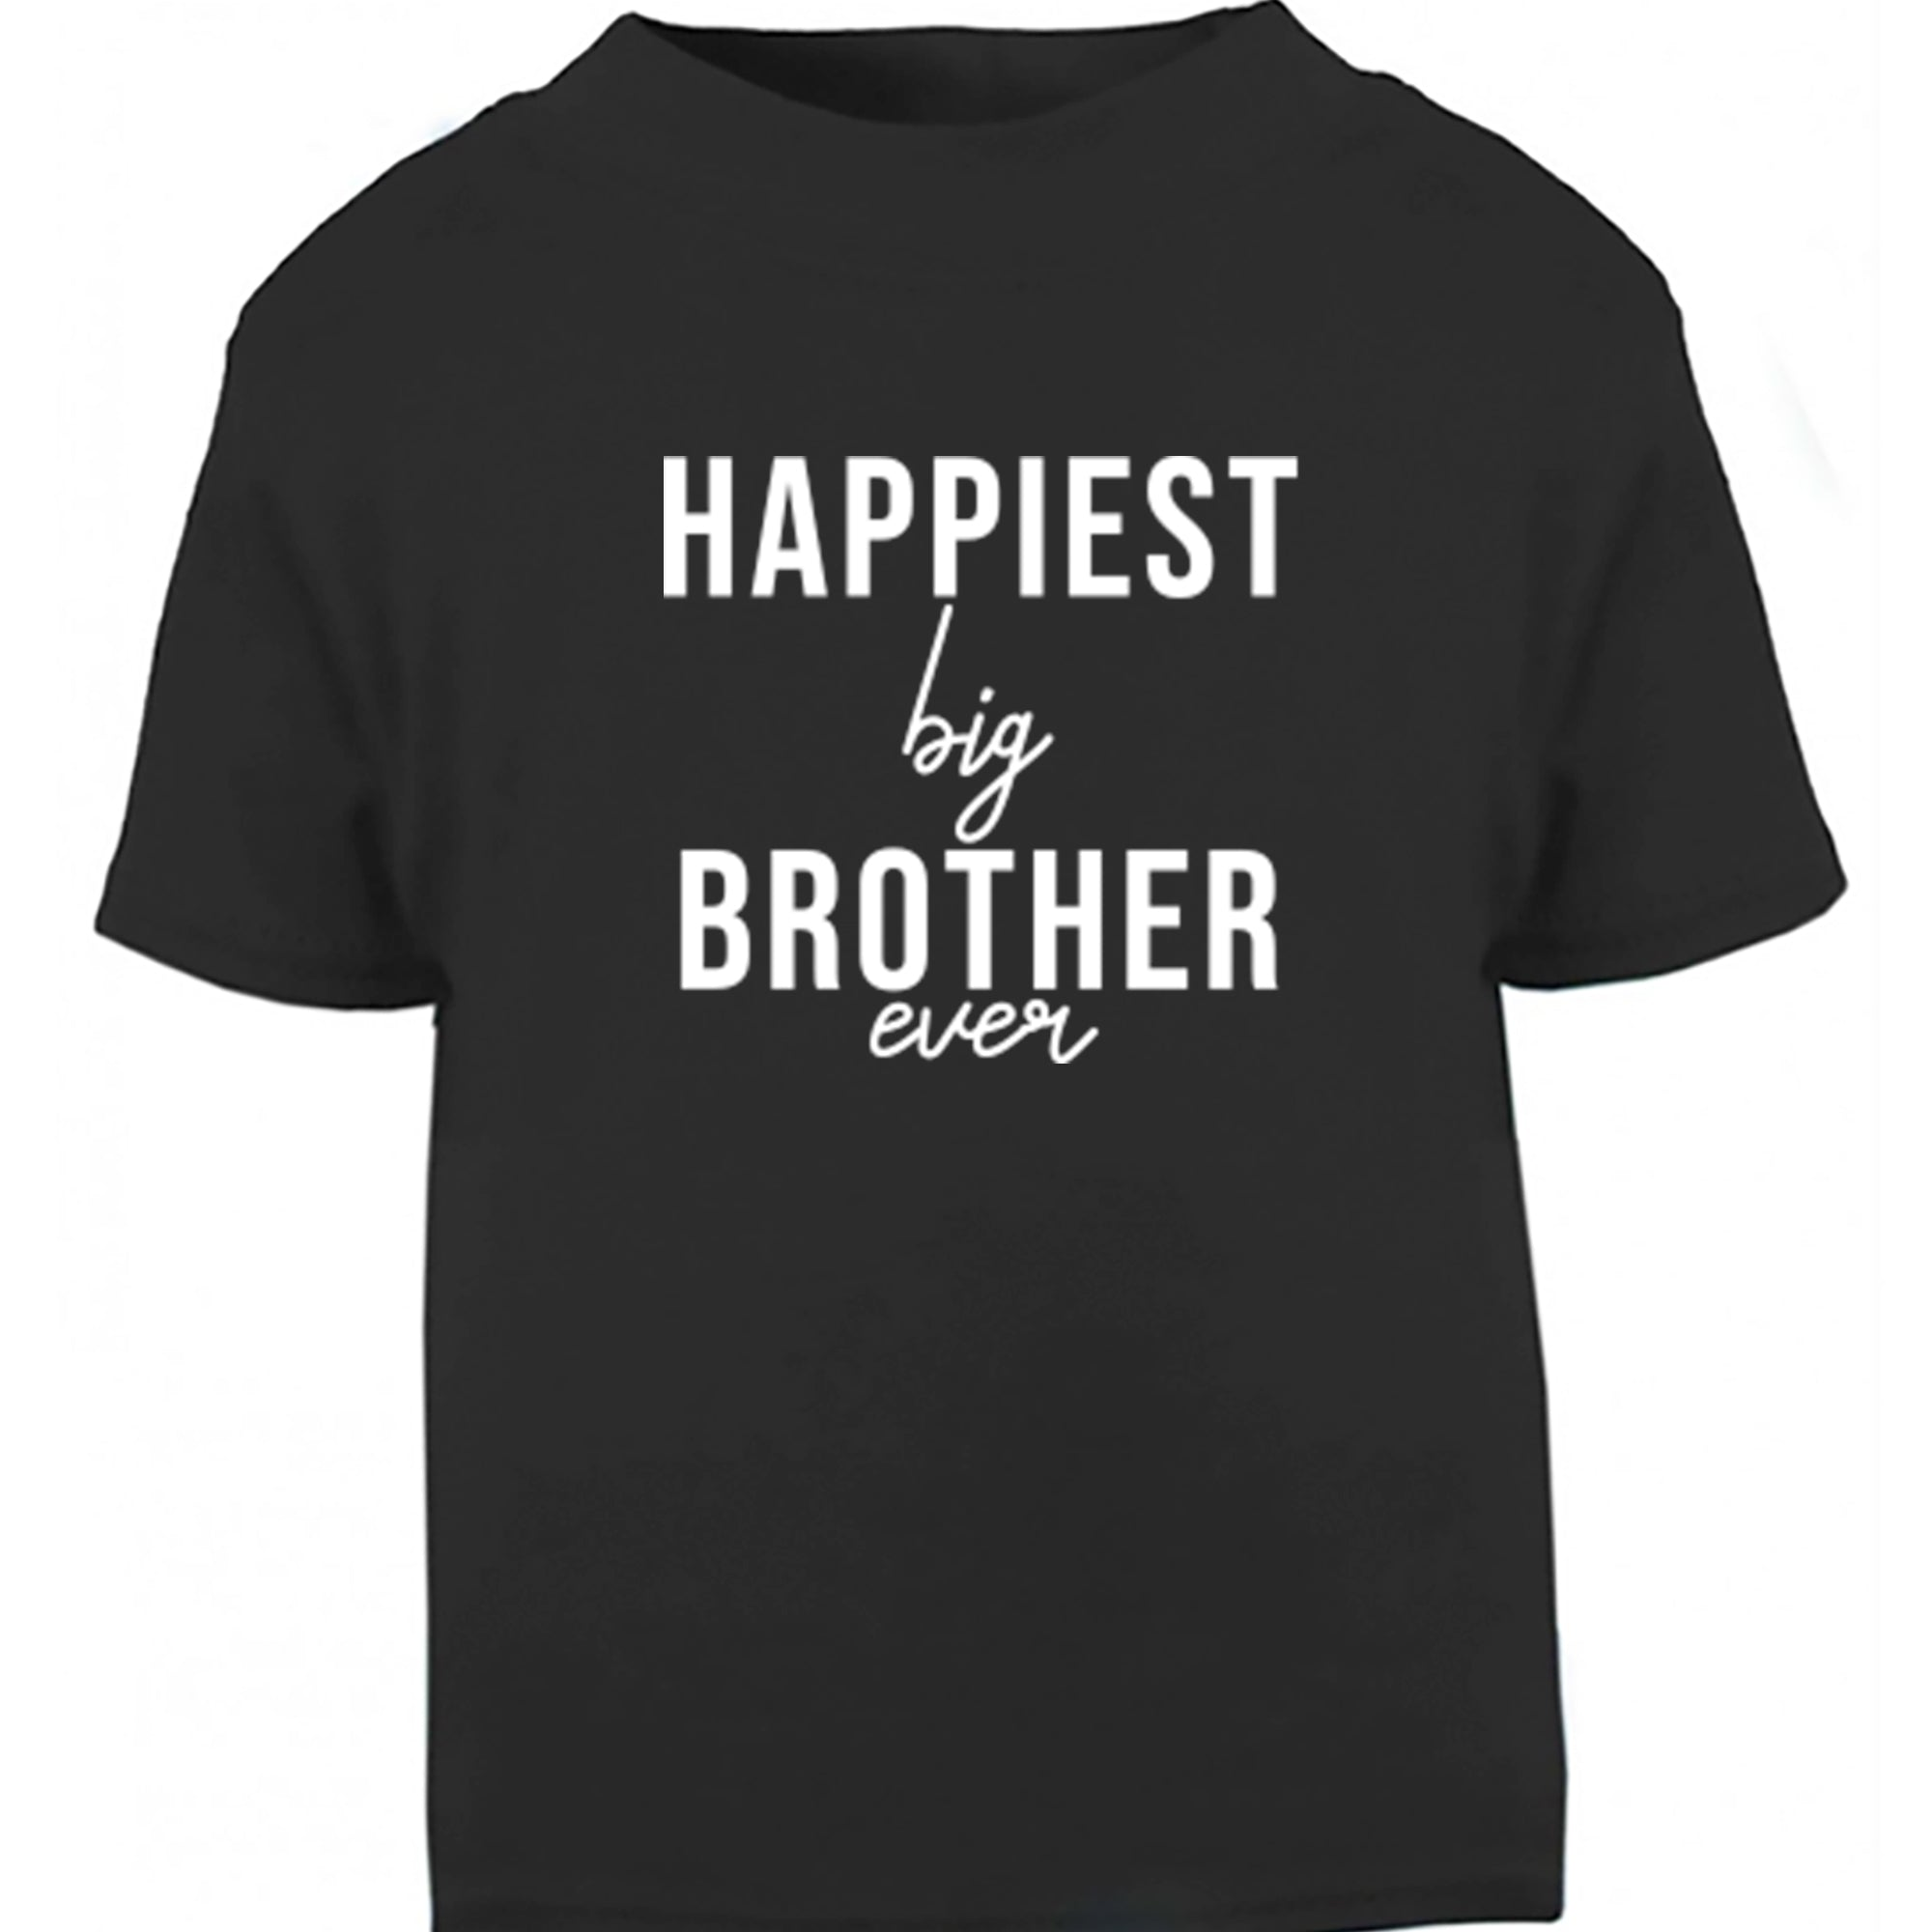 Happiest Big Brother Ever Childrens Ages 3/4-12/14 Unisex Fit T-Shirt S0527 - Illustrated Identity Ltd.